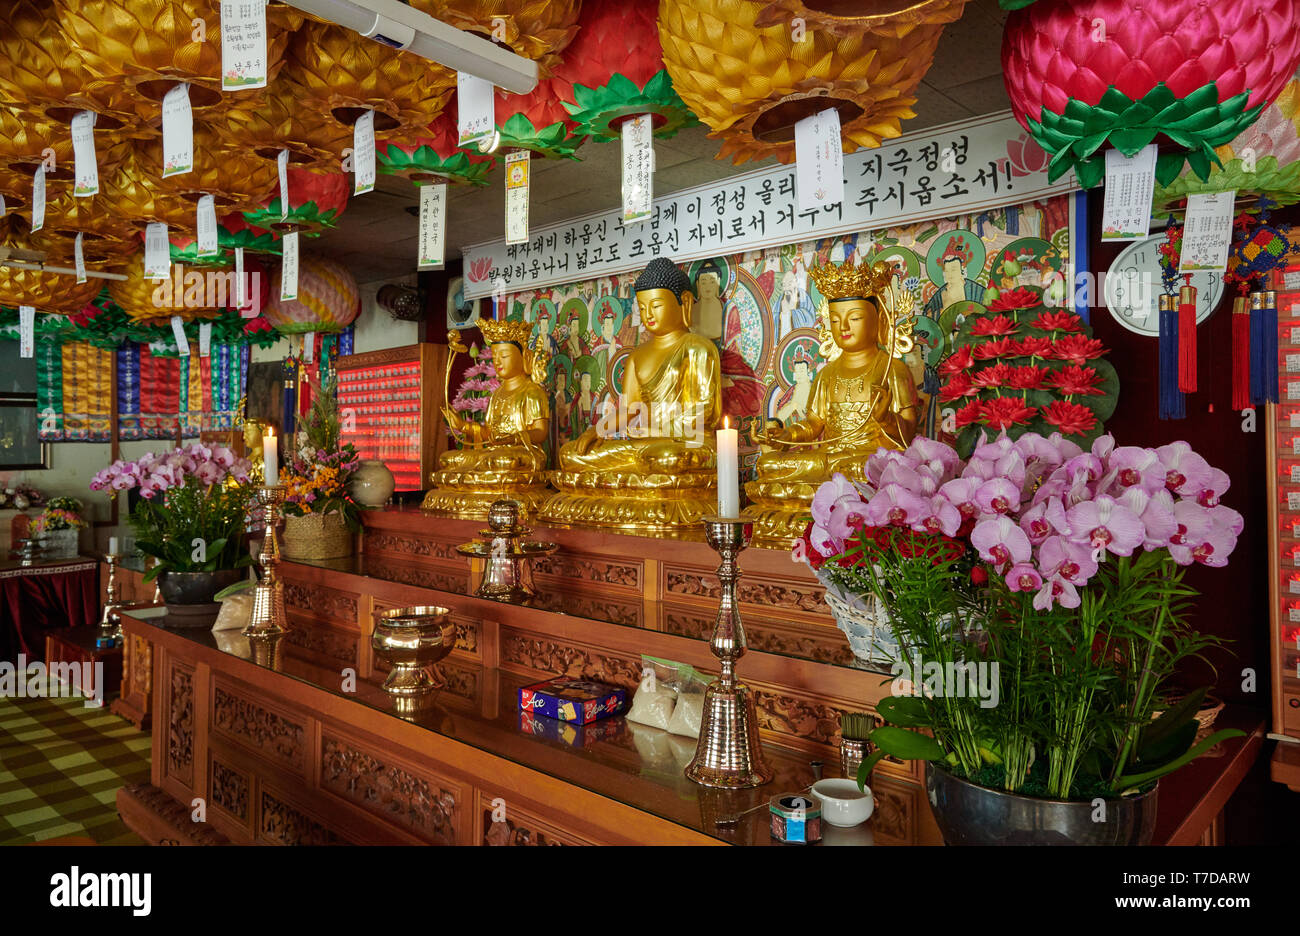 interior shot of Baekunsa Temple or 'White Cloud Temple' on Yeonjondo Island, Incheon, South Korea - Stock Image